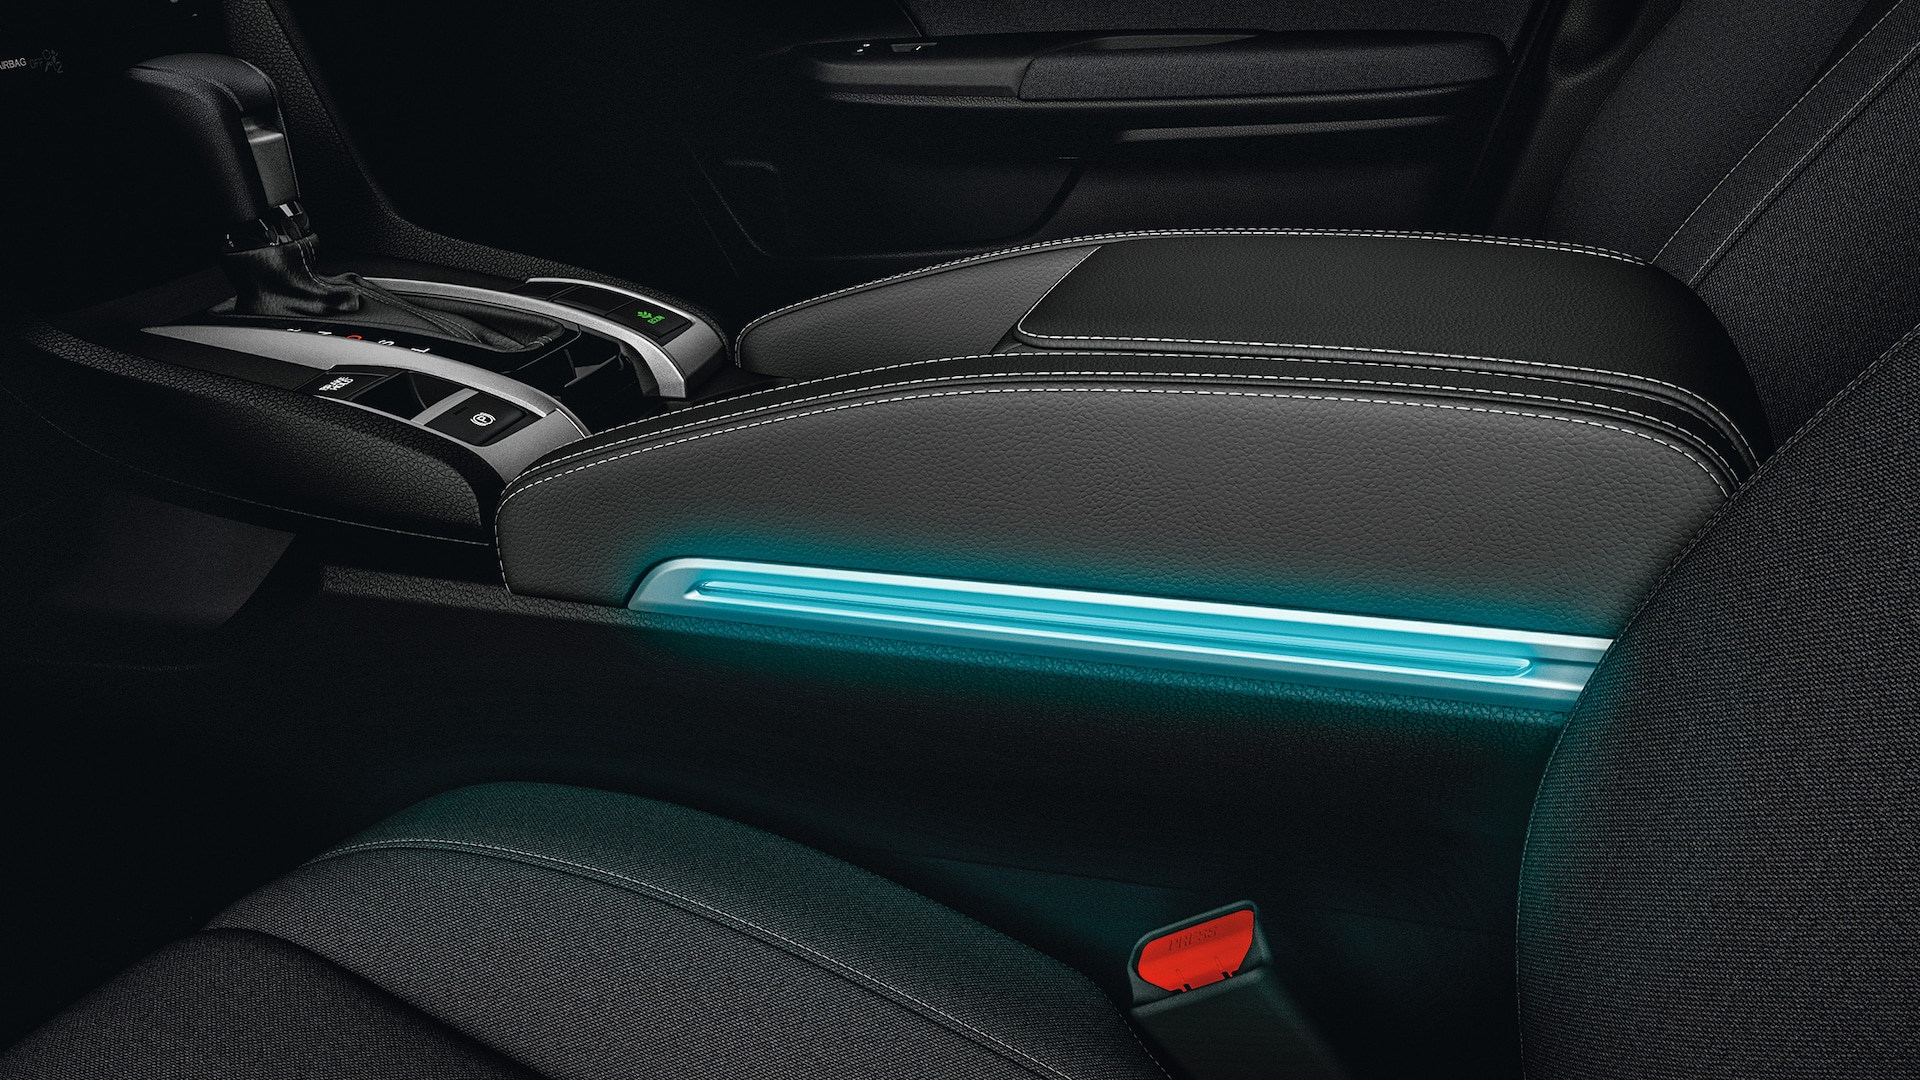 Illuminated armrest detail in the 2021 Honda Civic Sedan.